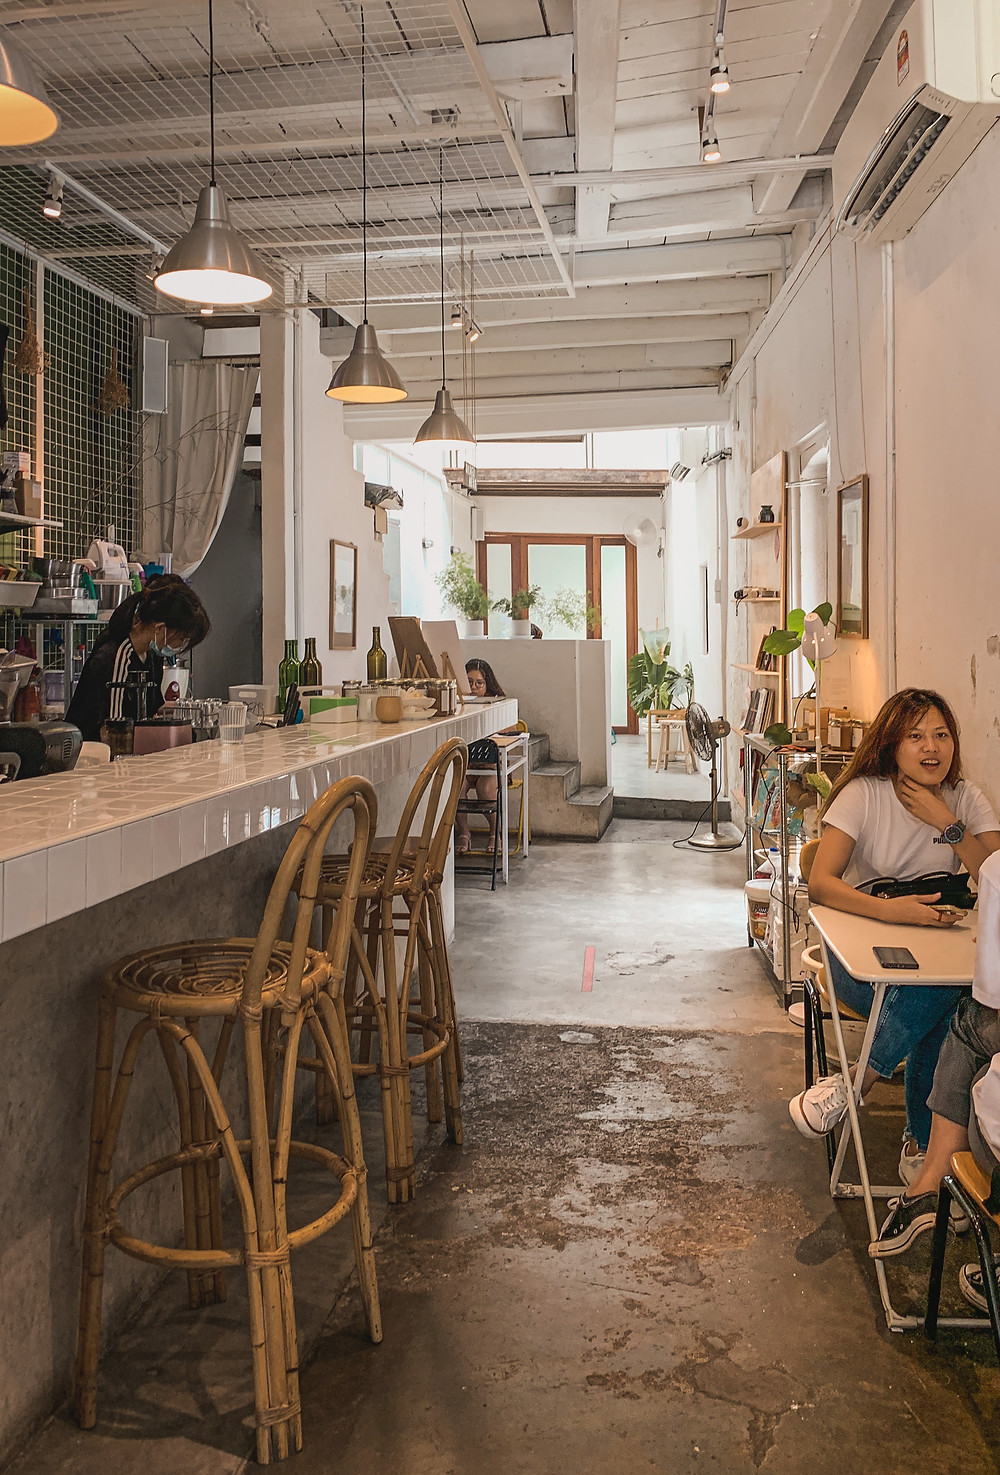 Narrow rustic interiors of Le楽 Cafe, RollingBear Travels photography.